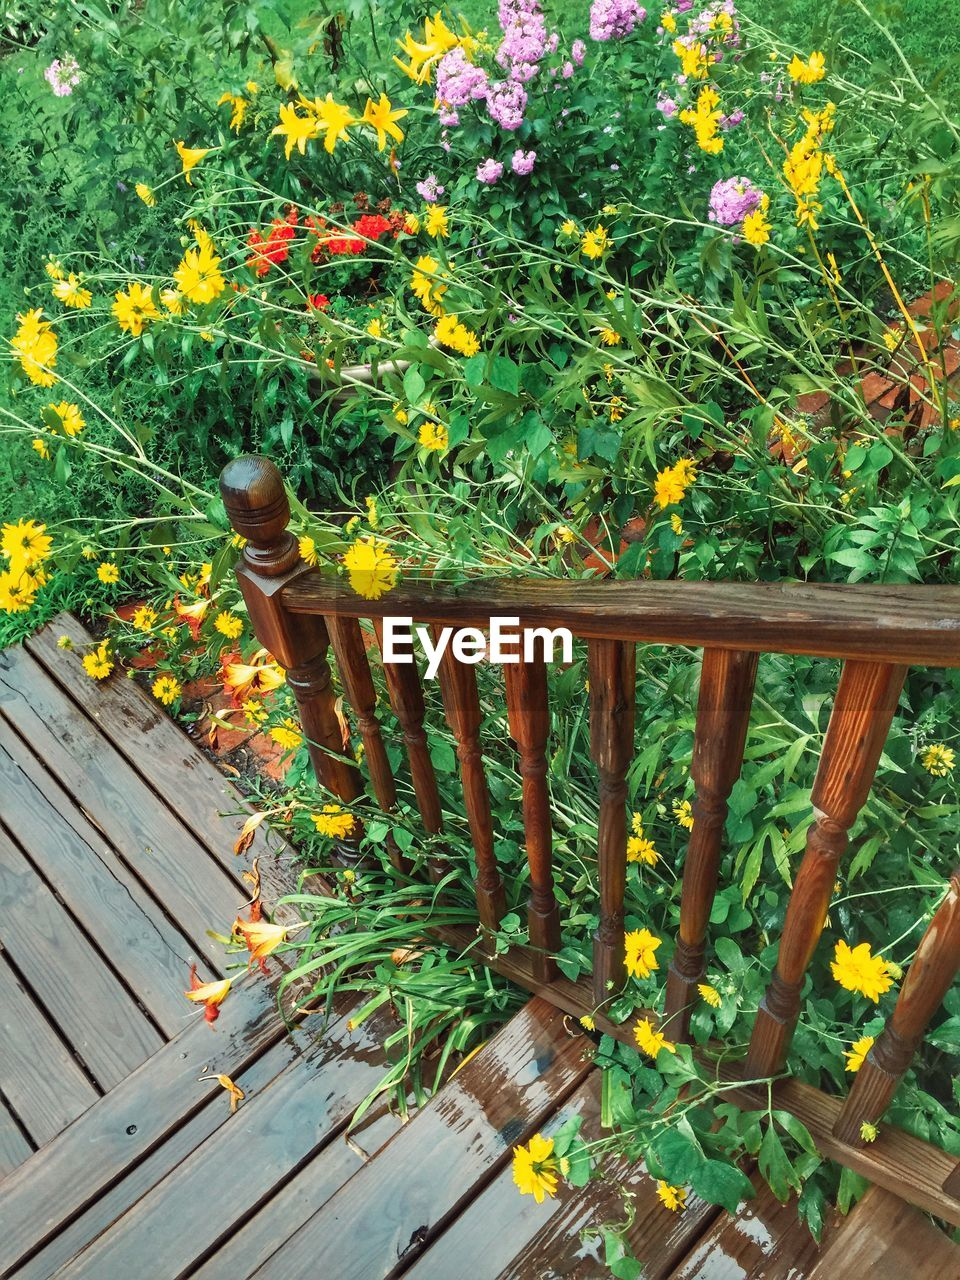 HIGH ANGLE VIEW OF FLOWERS IN YARD